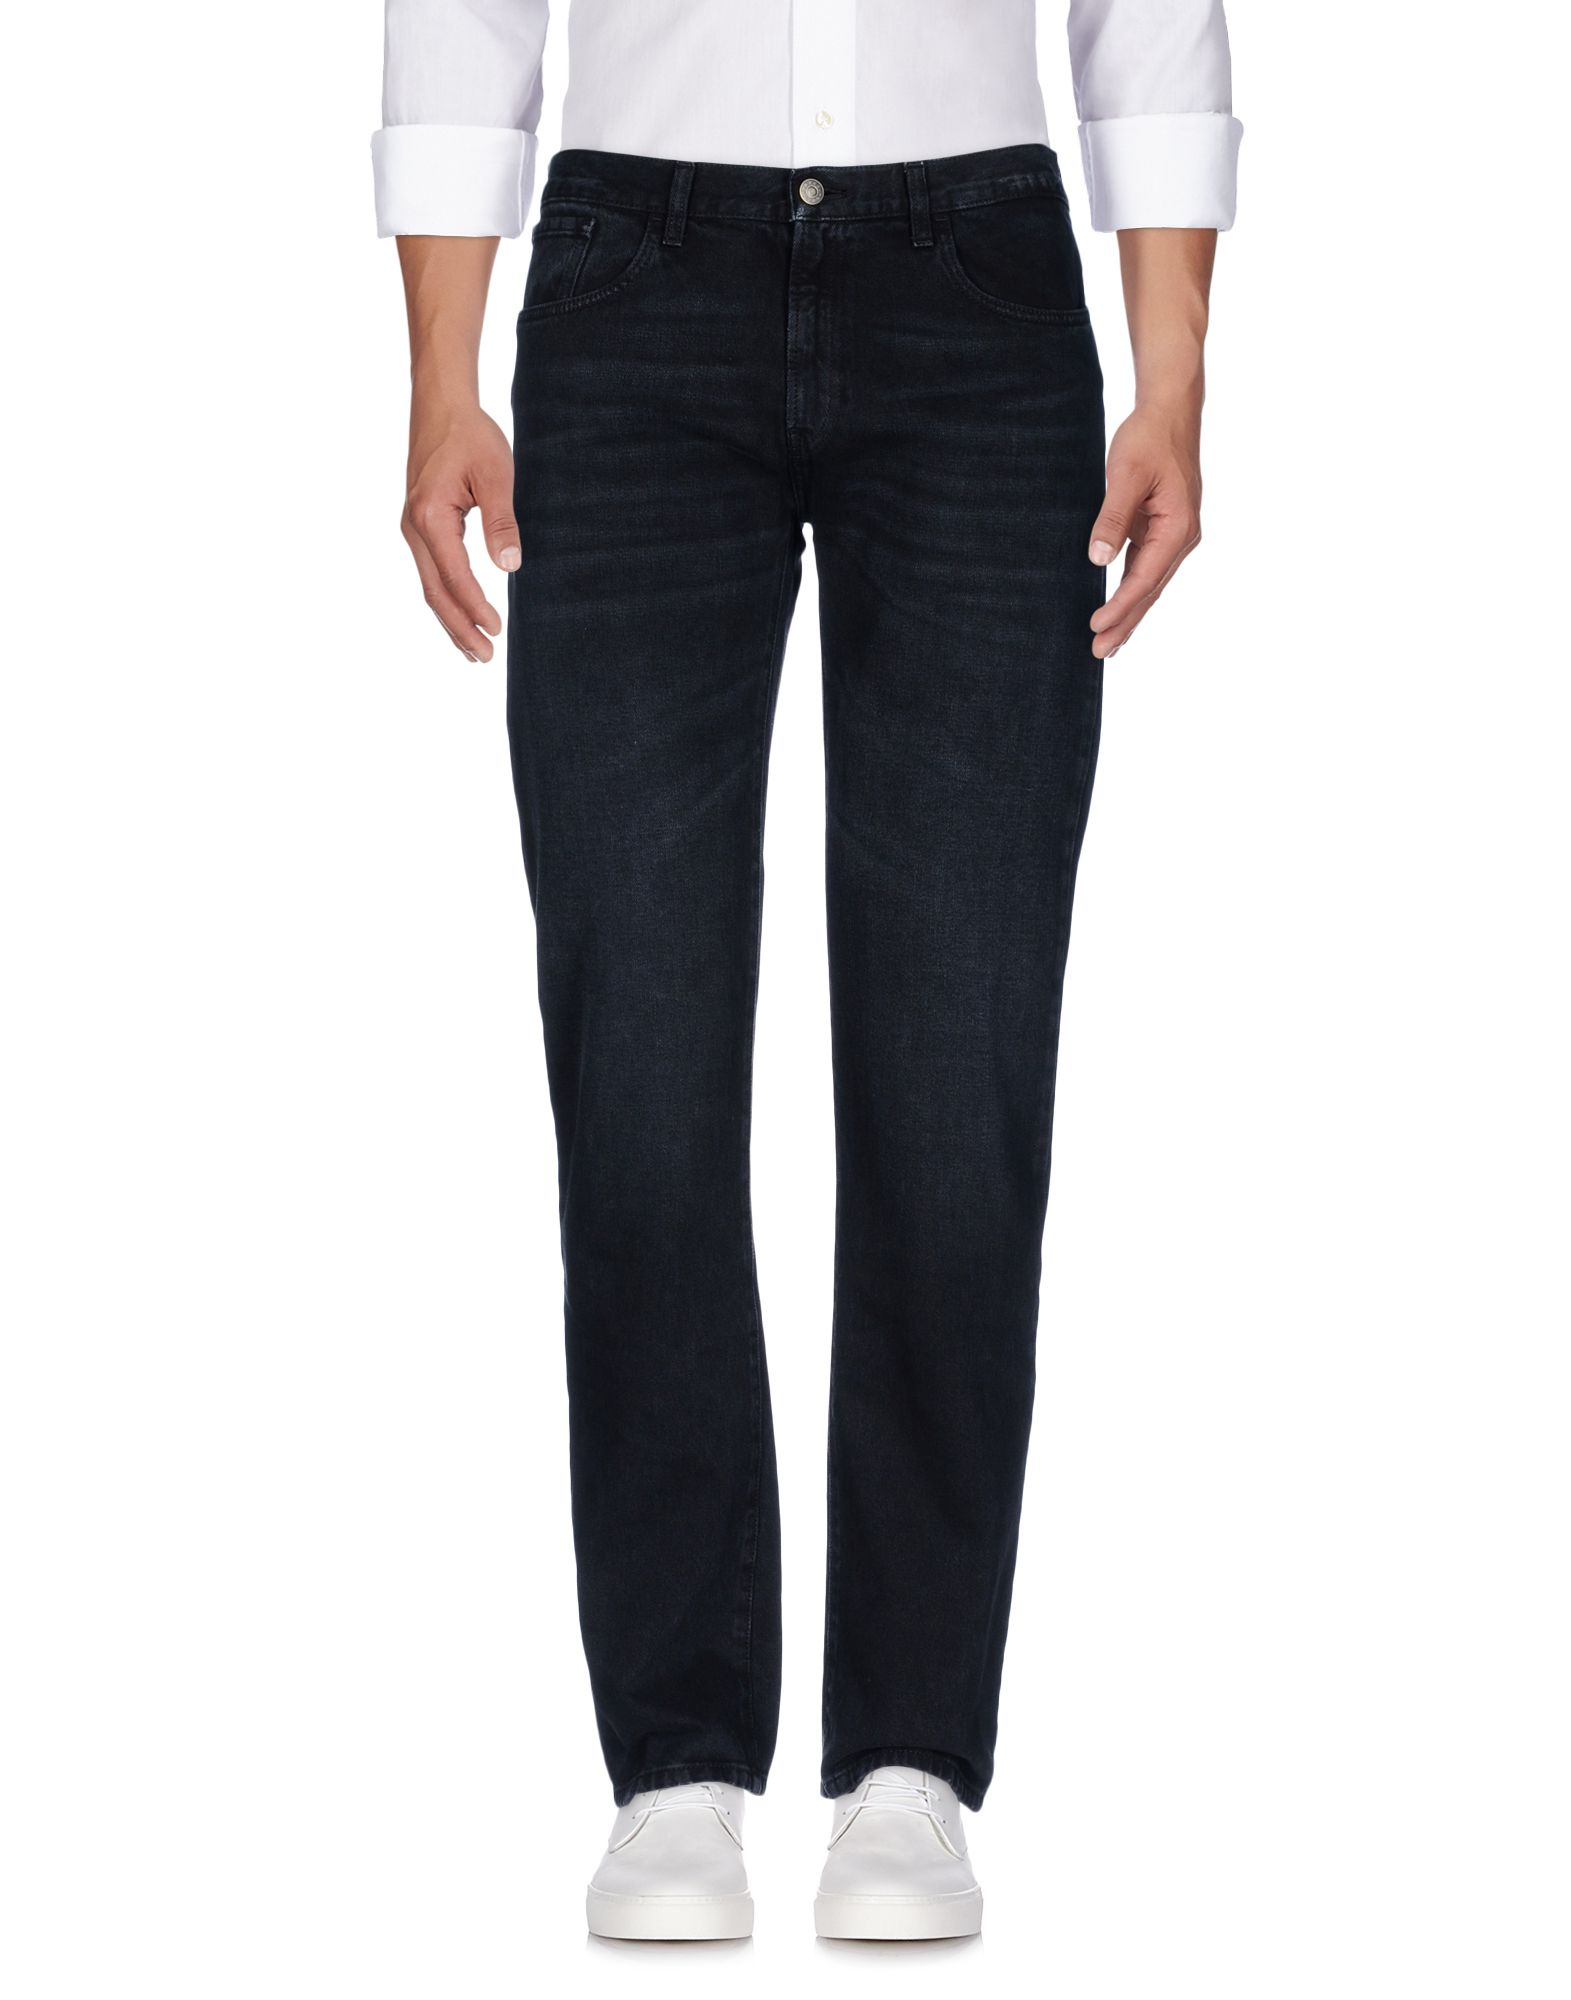 e676fb03098 Gucci Mens Jeans With Belt 37 - Best Jeans 2017